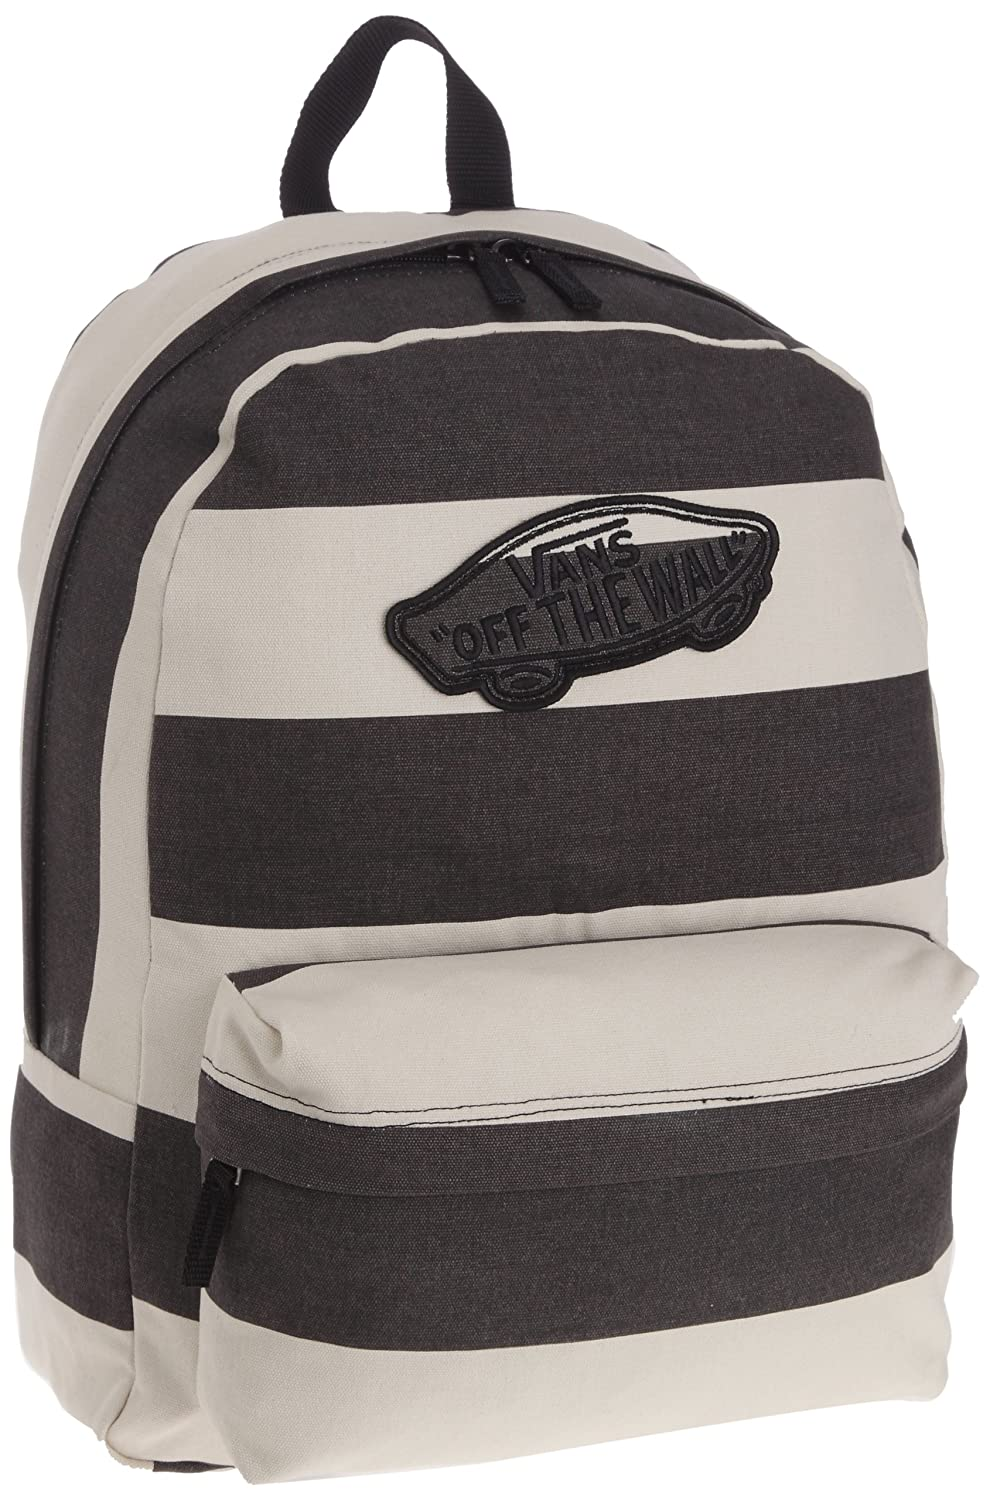 Amazon.com: Vans Realm Backpack Book Bag, Beige-Black: Clothing